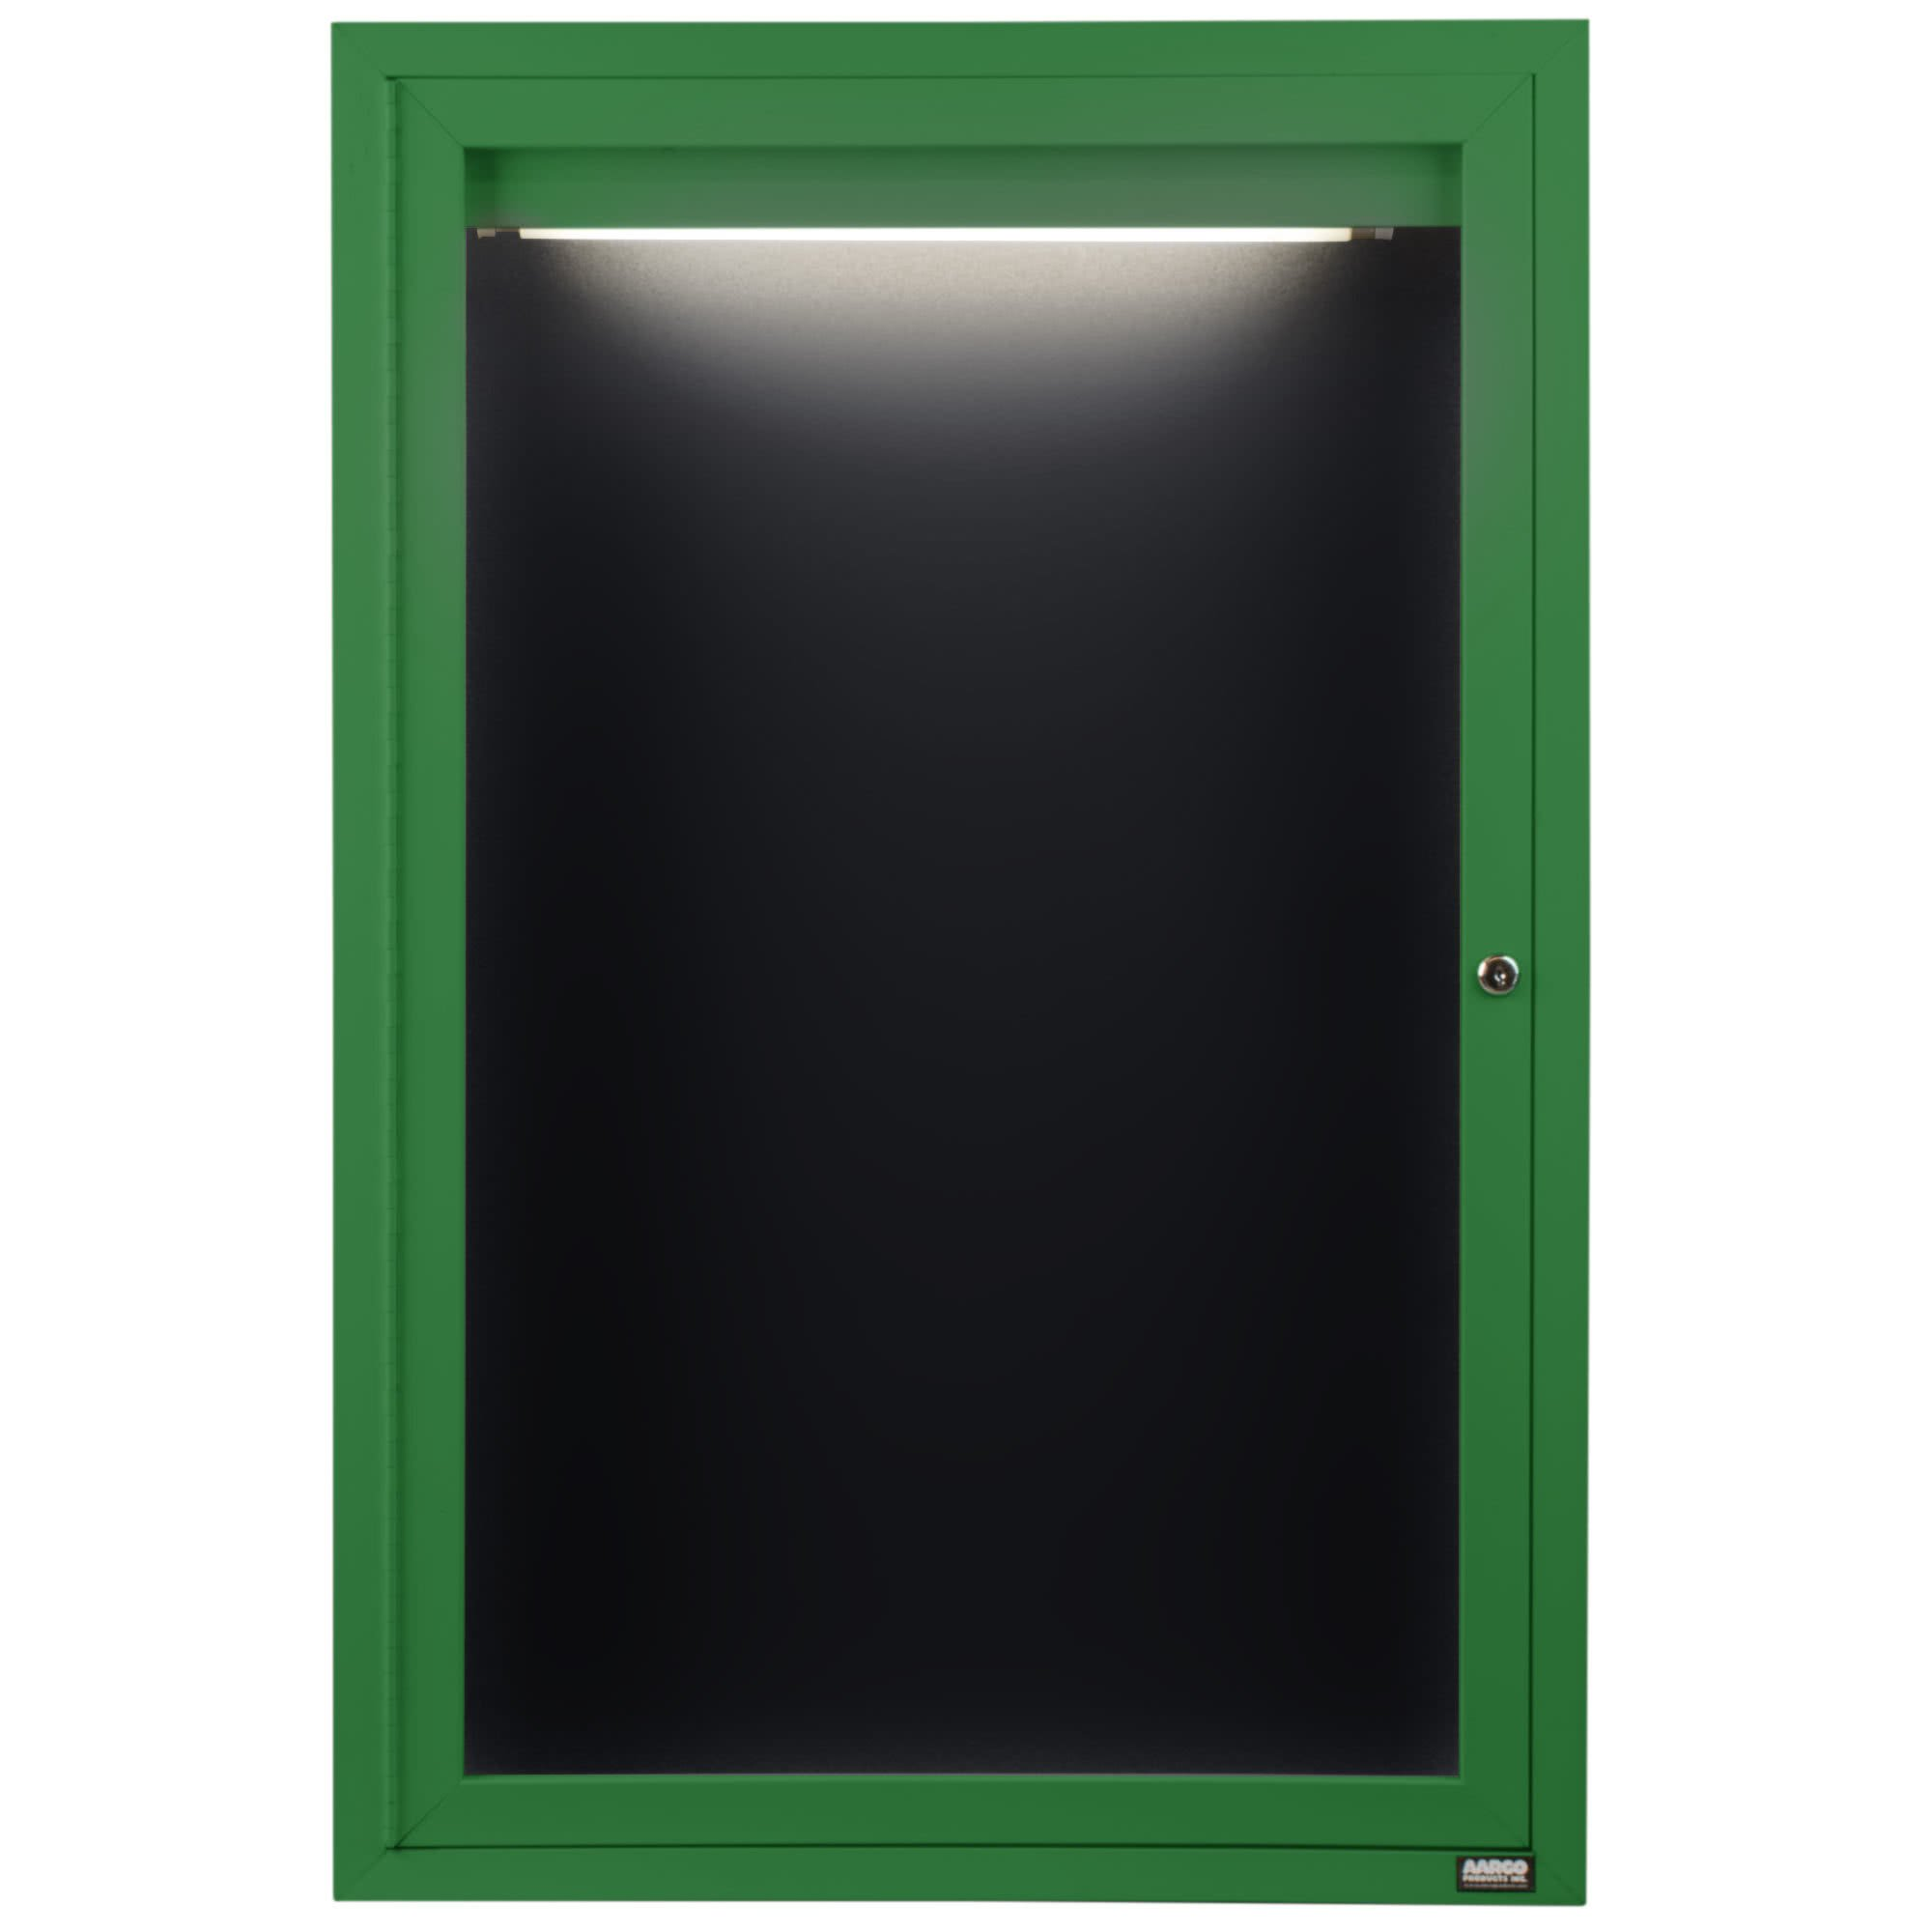 TableTop King ADC2418IG 24'' x 18'' Enclosed Hinged Locking 1 Door Powder Coated Green Aluminum Indoor Lighted Message Center with Black Letter Board